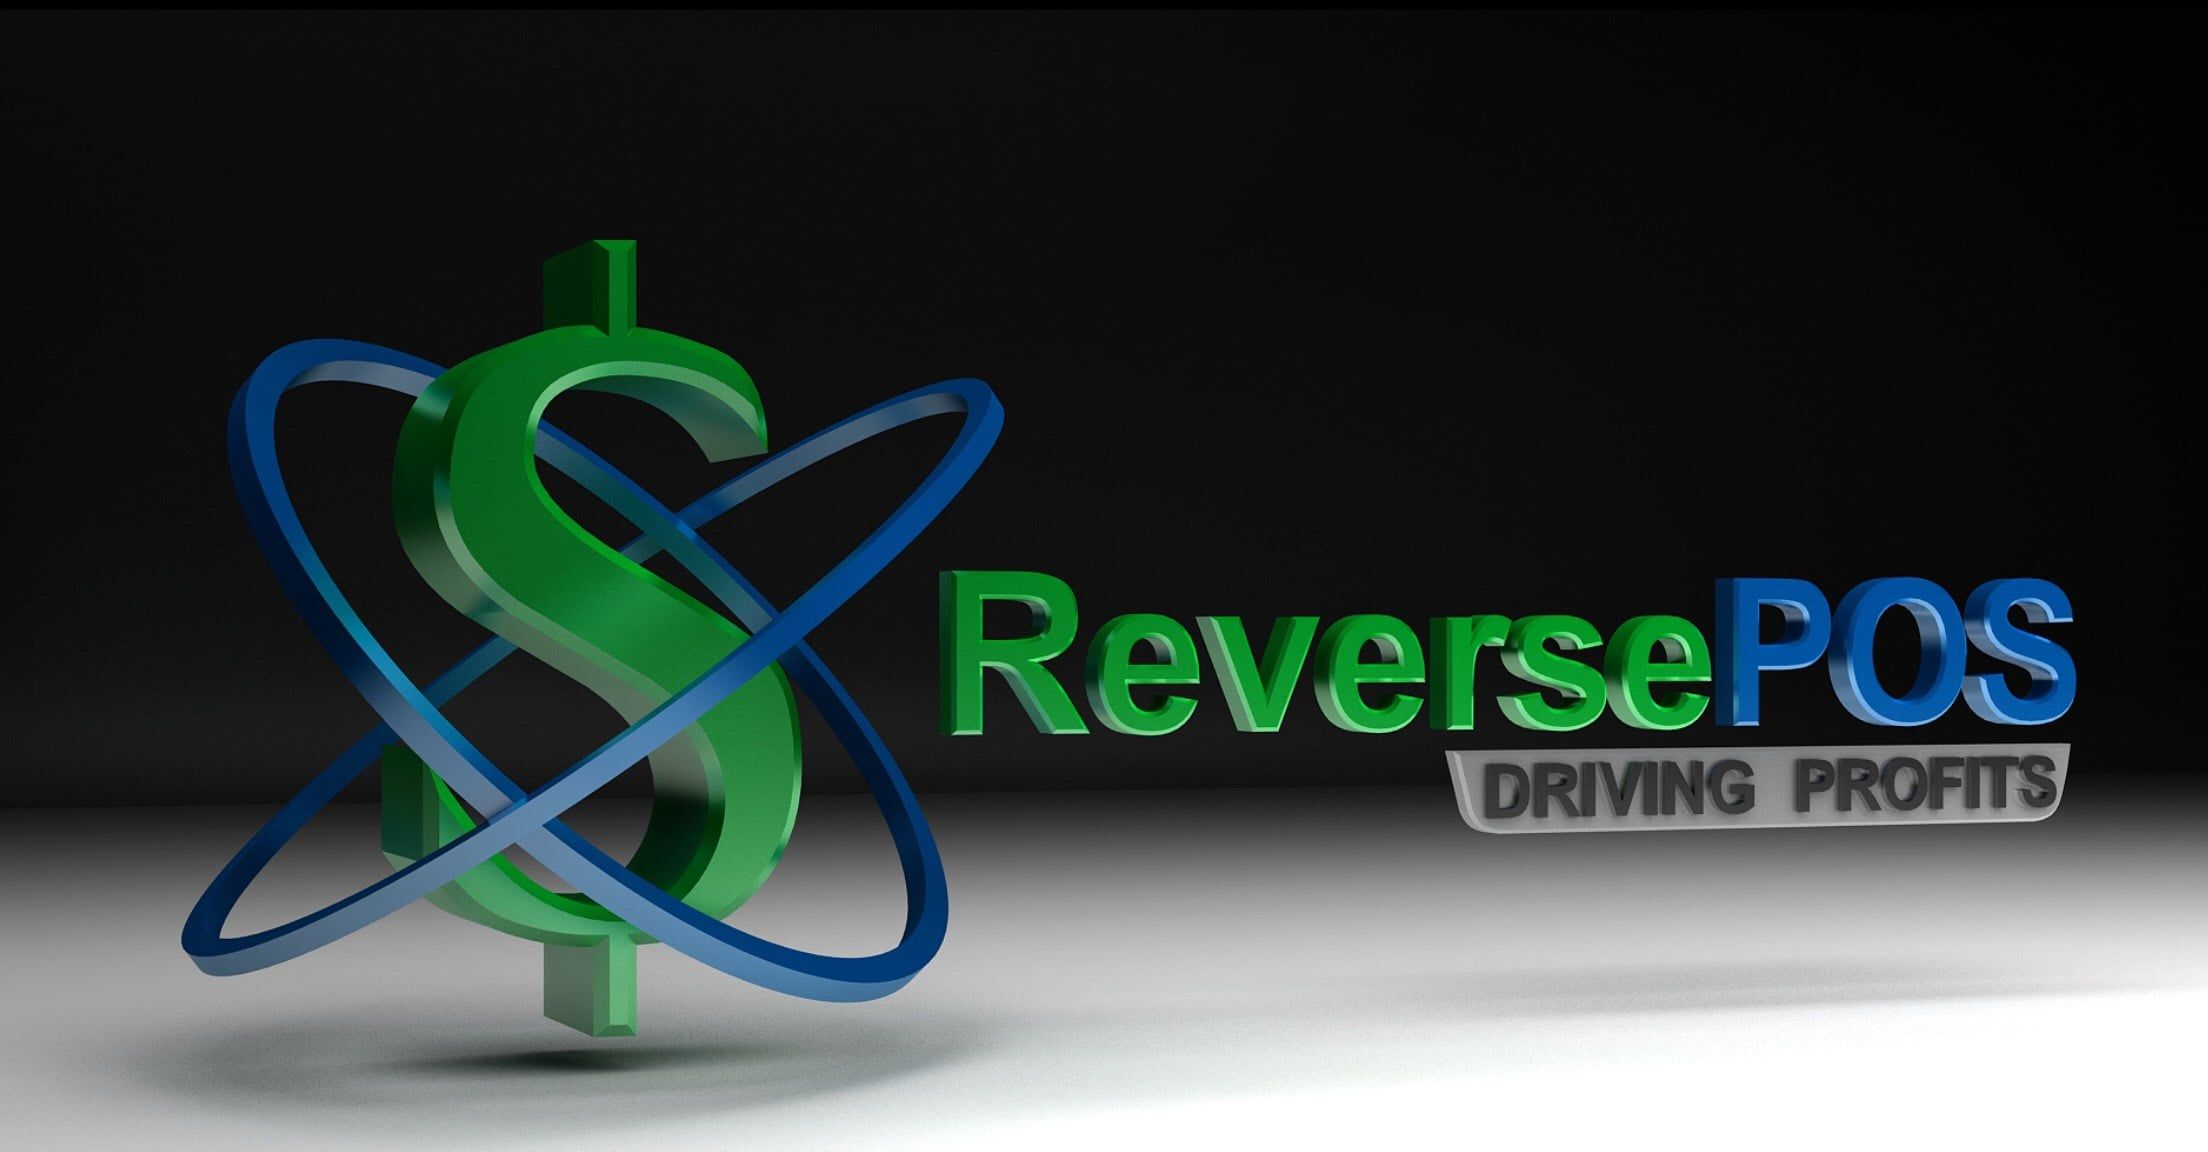 ReversePOS We have pioneered the ReversePOS program to